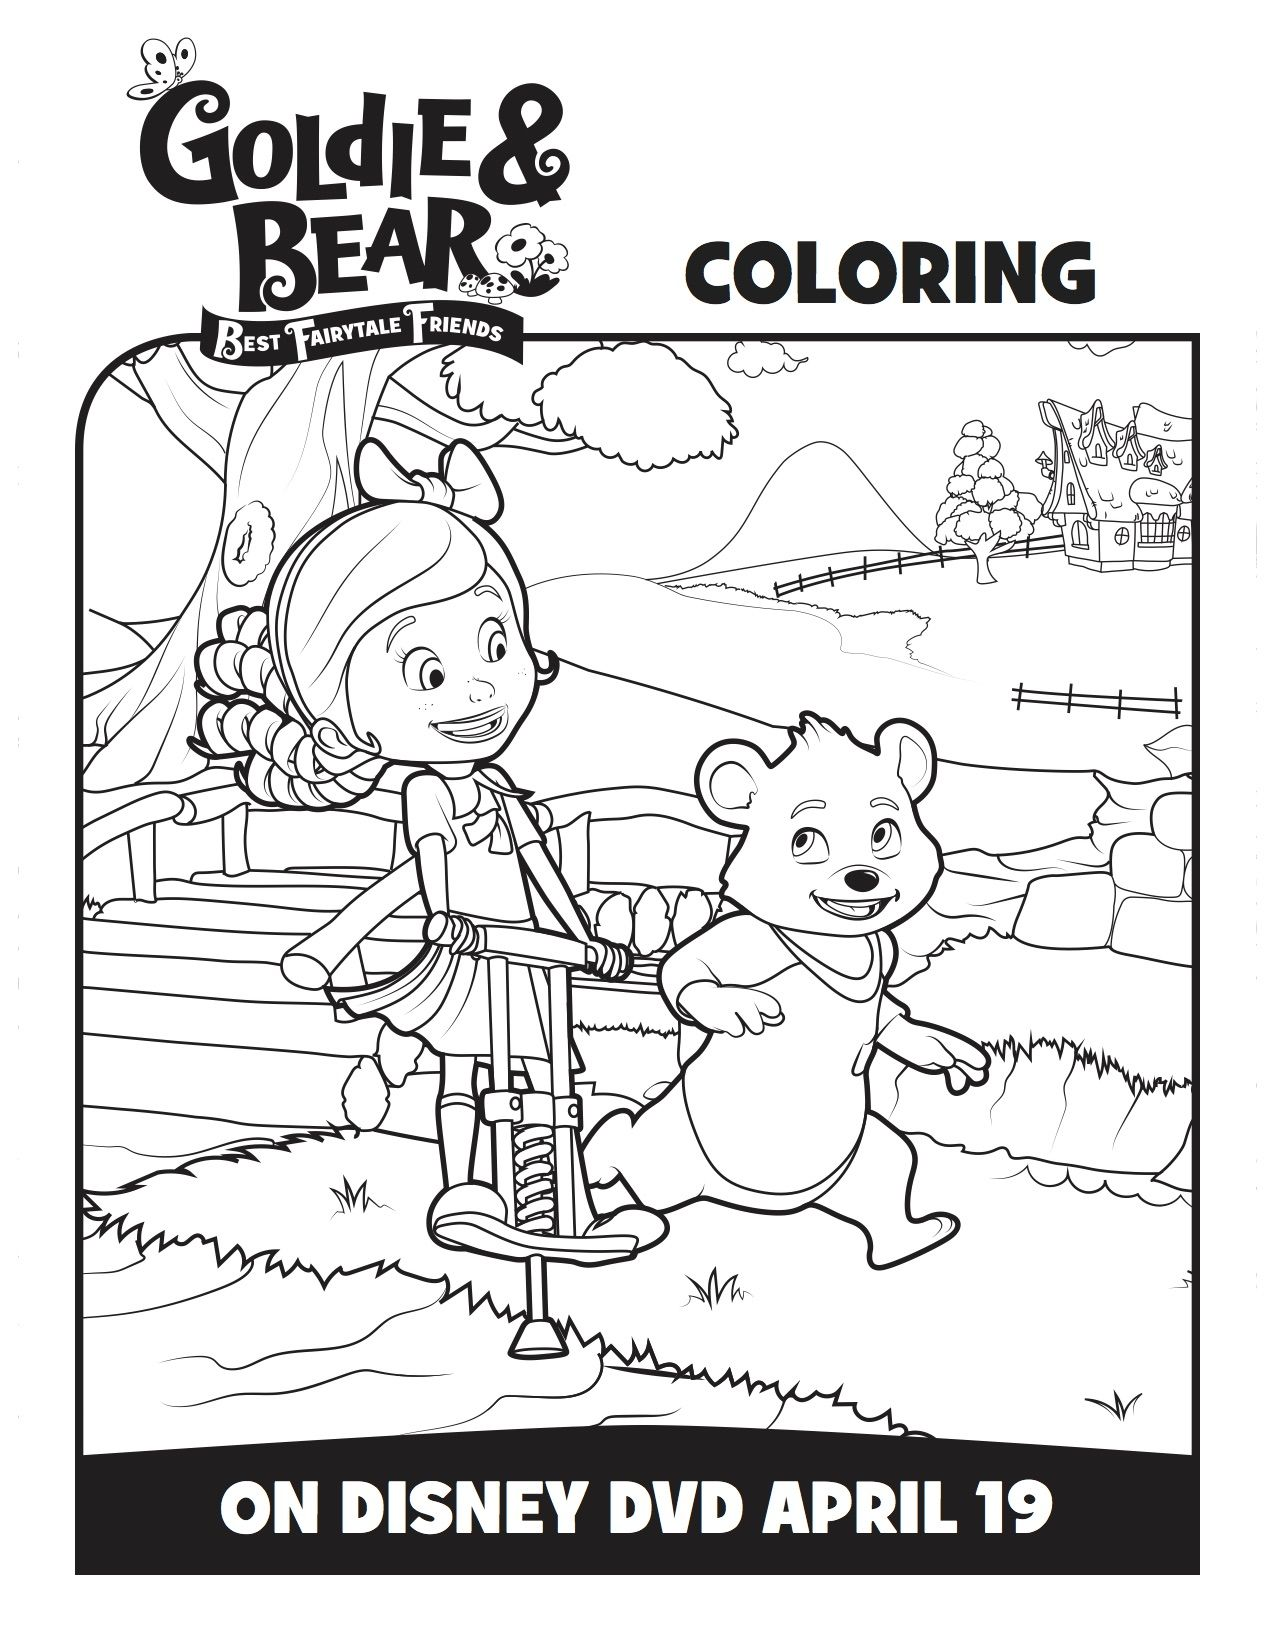 goldie and bear coloring pages Disney Goldie & Bear Best Fairytale Friends Coloring Page | Disney  goldie and bear coloring pages